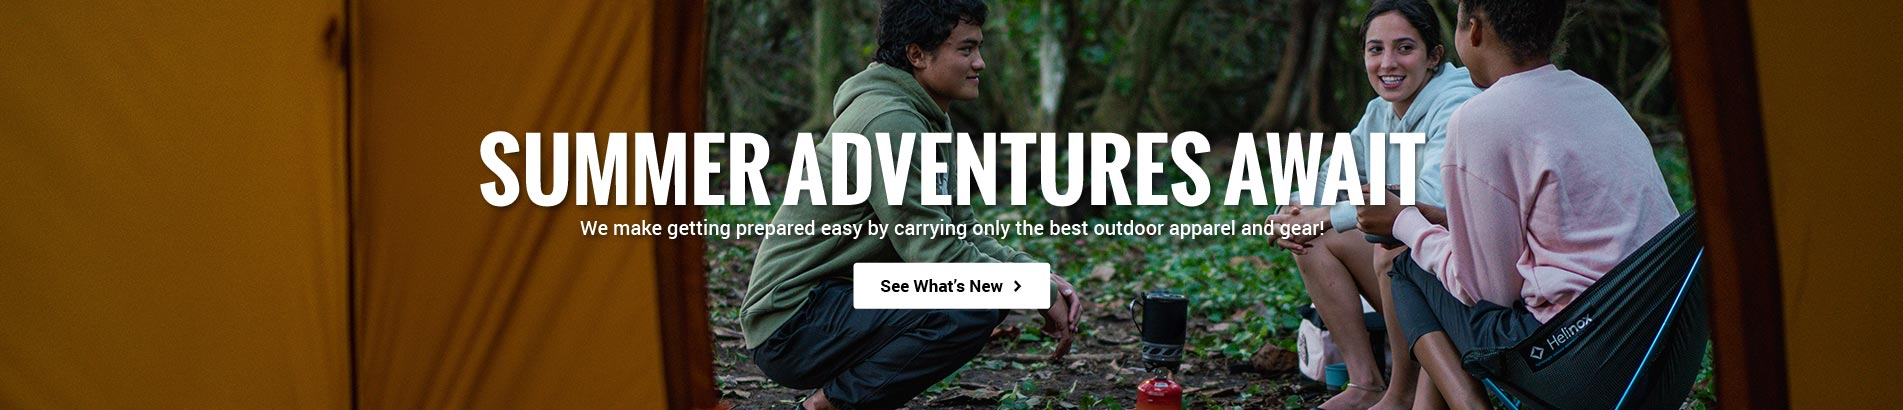 Summer Adventures Await: We make getting prepared easy by carrying only the best outdoor apparel and gear! See What's New>